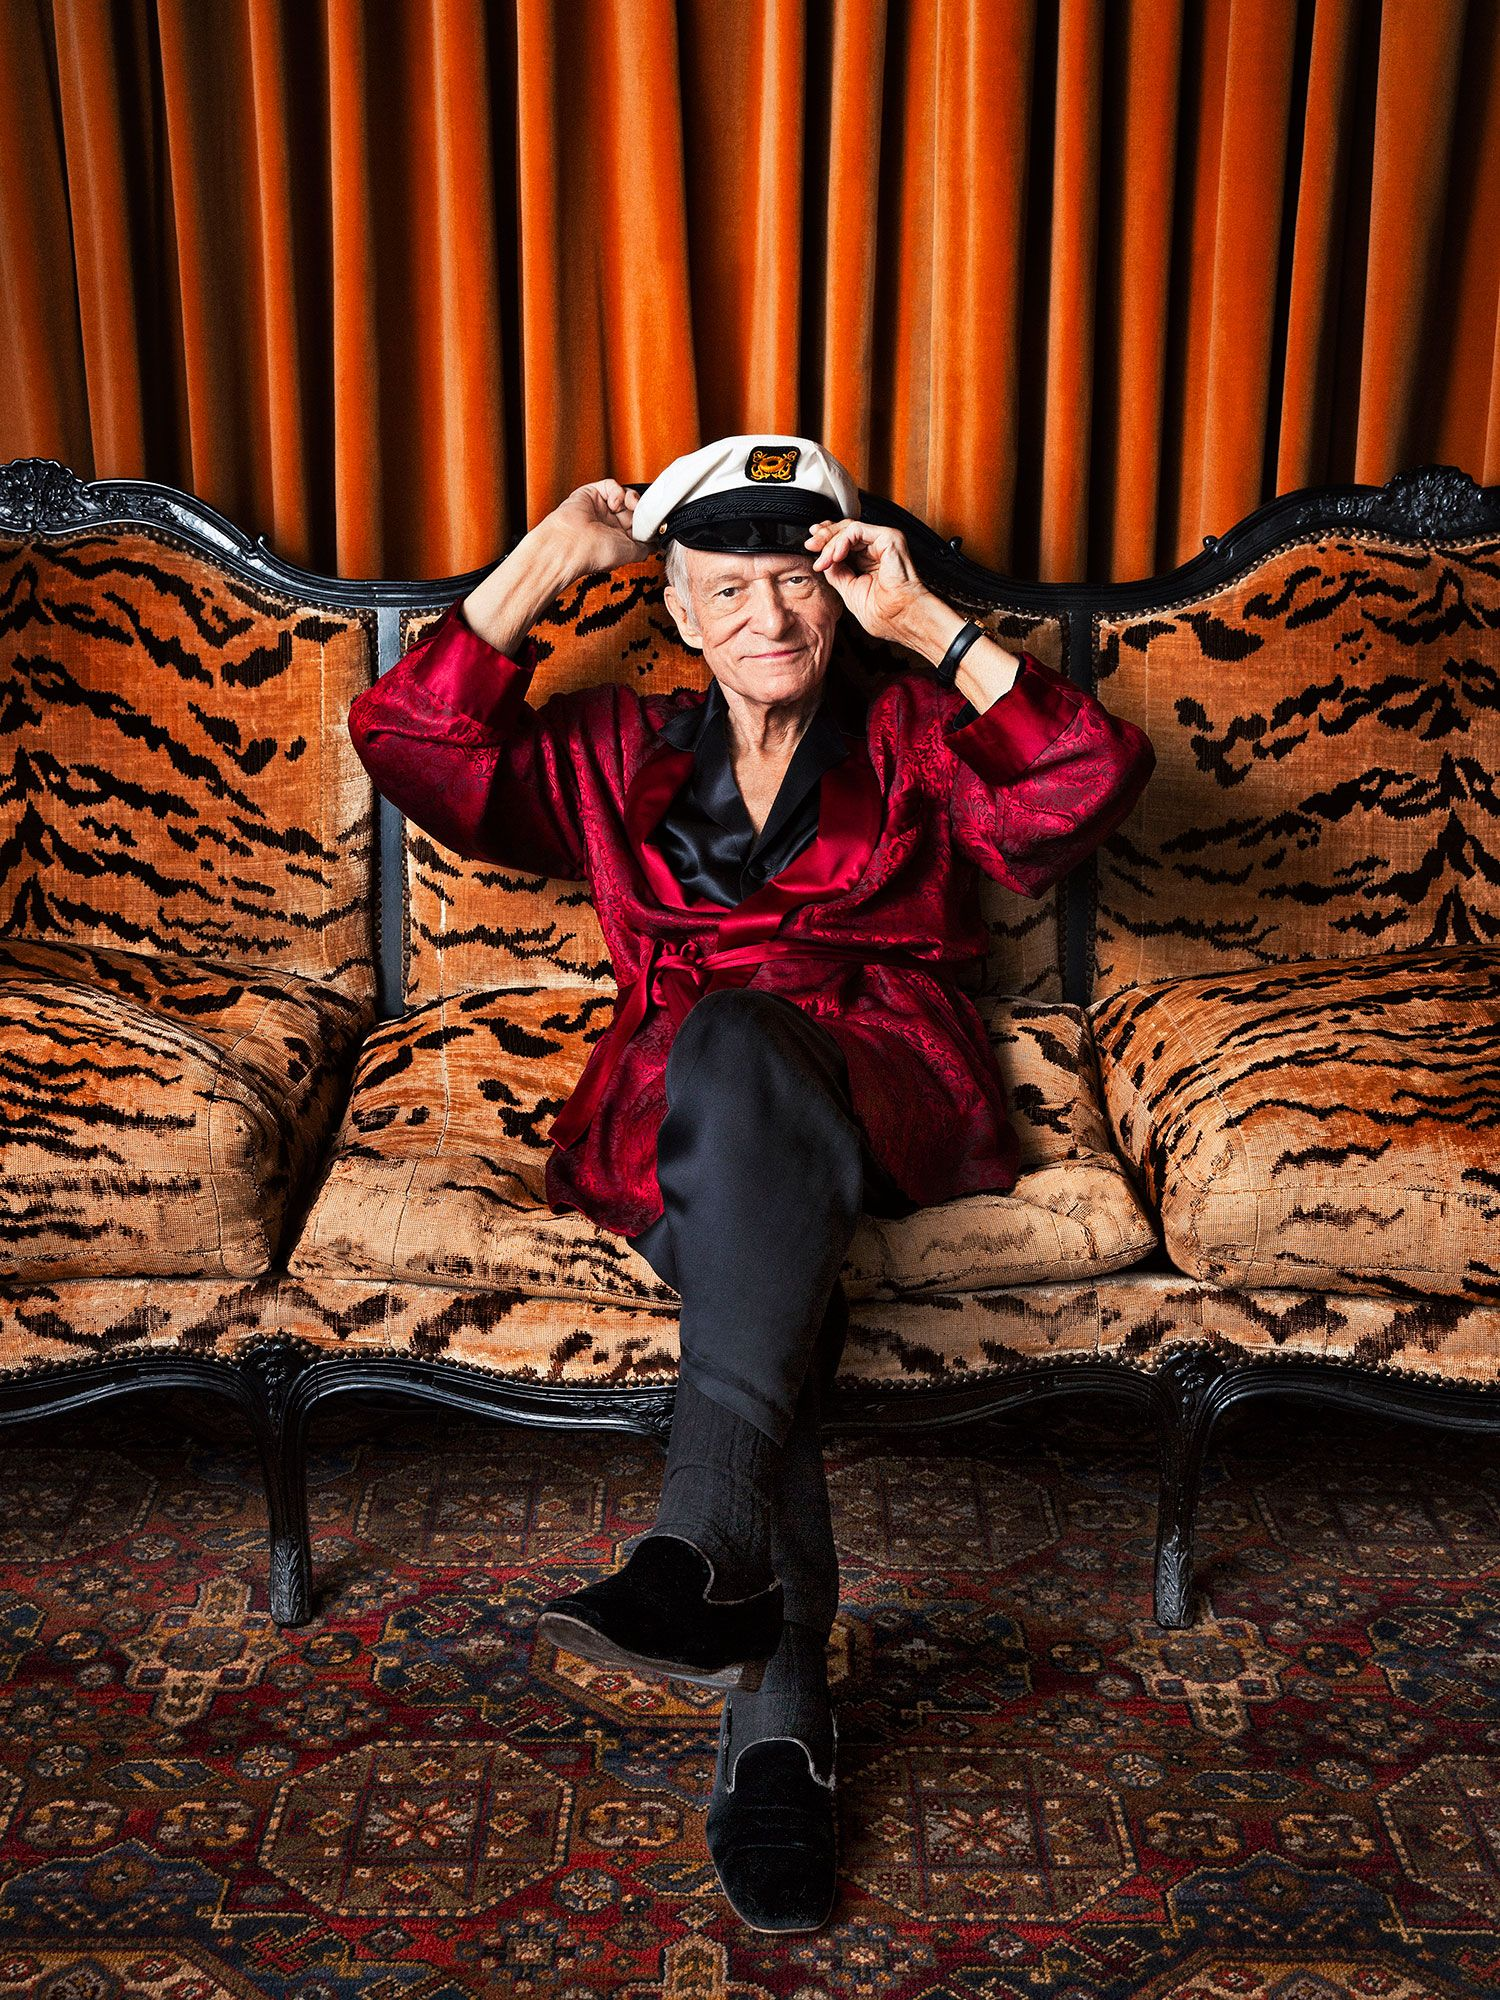 Hugh Hefner Esquire Interview The Perfect Life Of Hugh Hefner